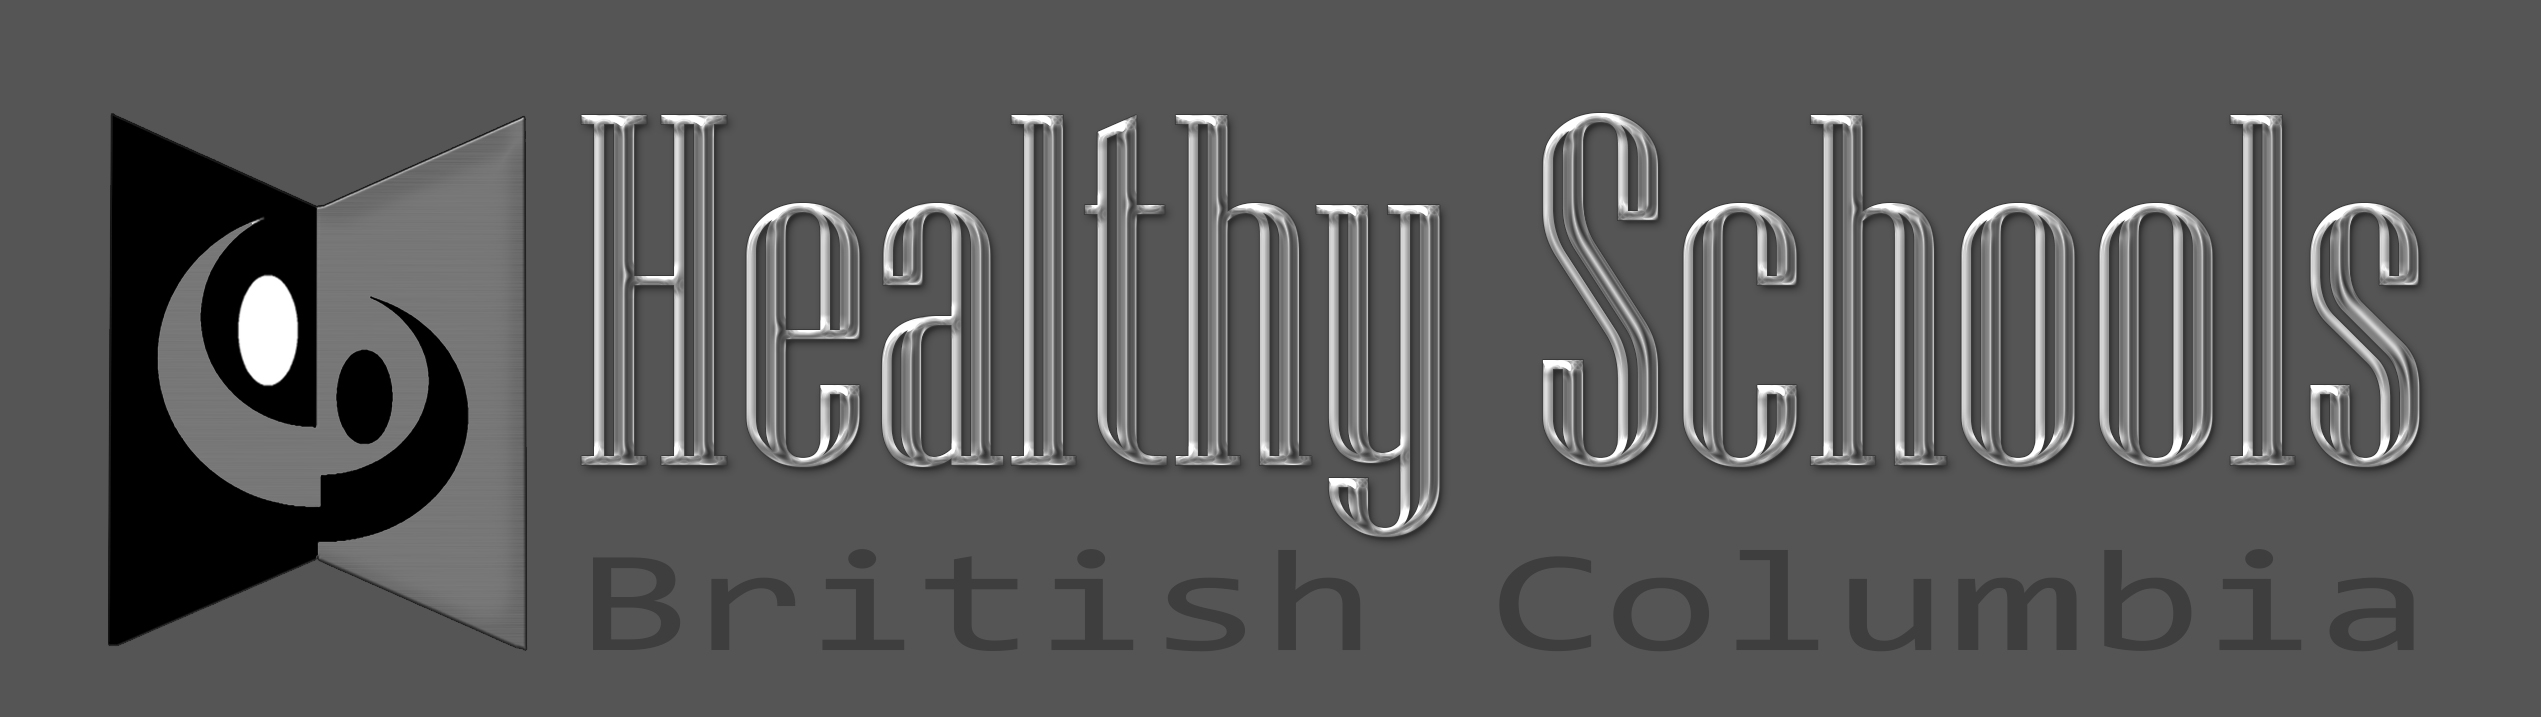 Logo Design by Sahil Dev - Entry No. 426 in the Logo Design Contest SImple, Creative and Clean Logo Design for Healthy Schools British Columbia, Canada.